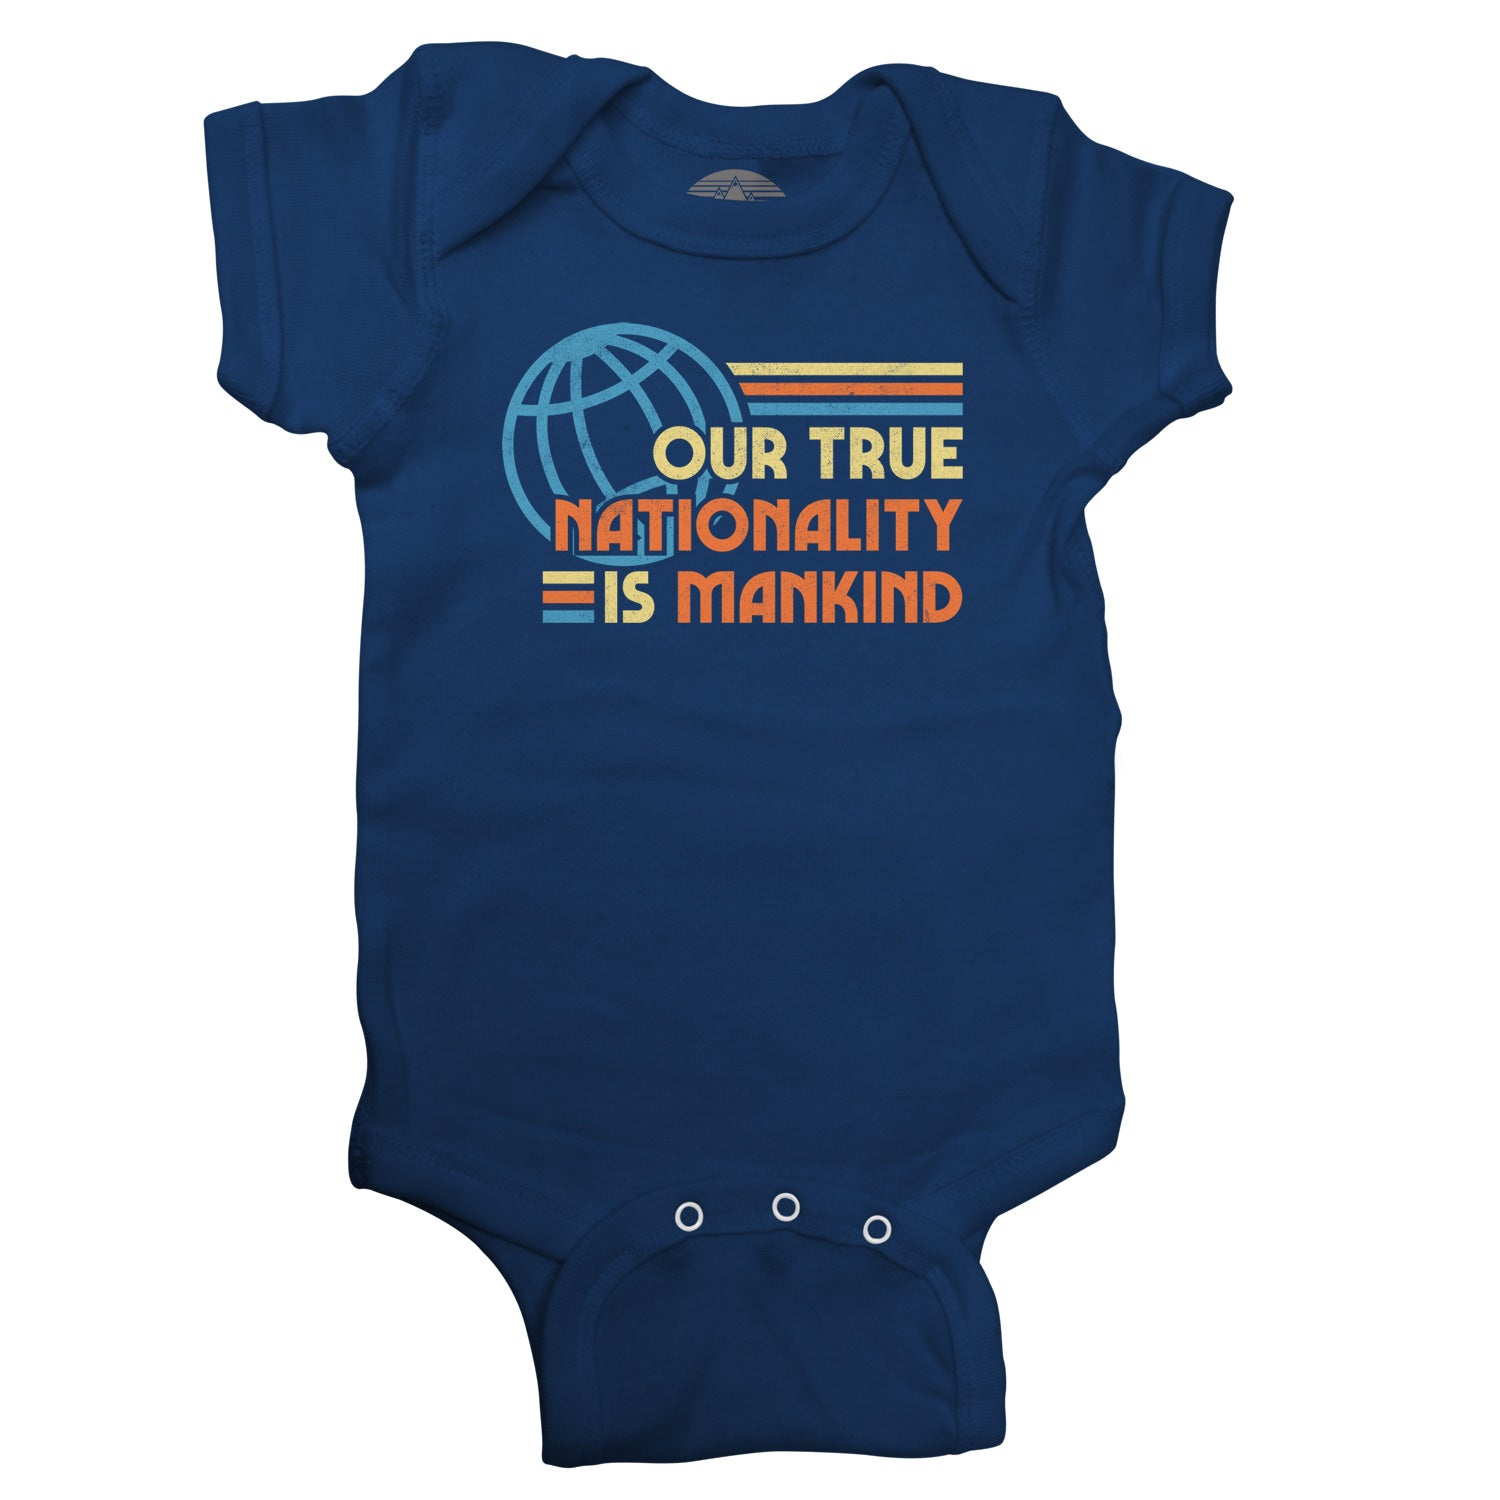 Our True Nationality is Mankind Infant Bodysuit - Unisex Fit